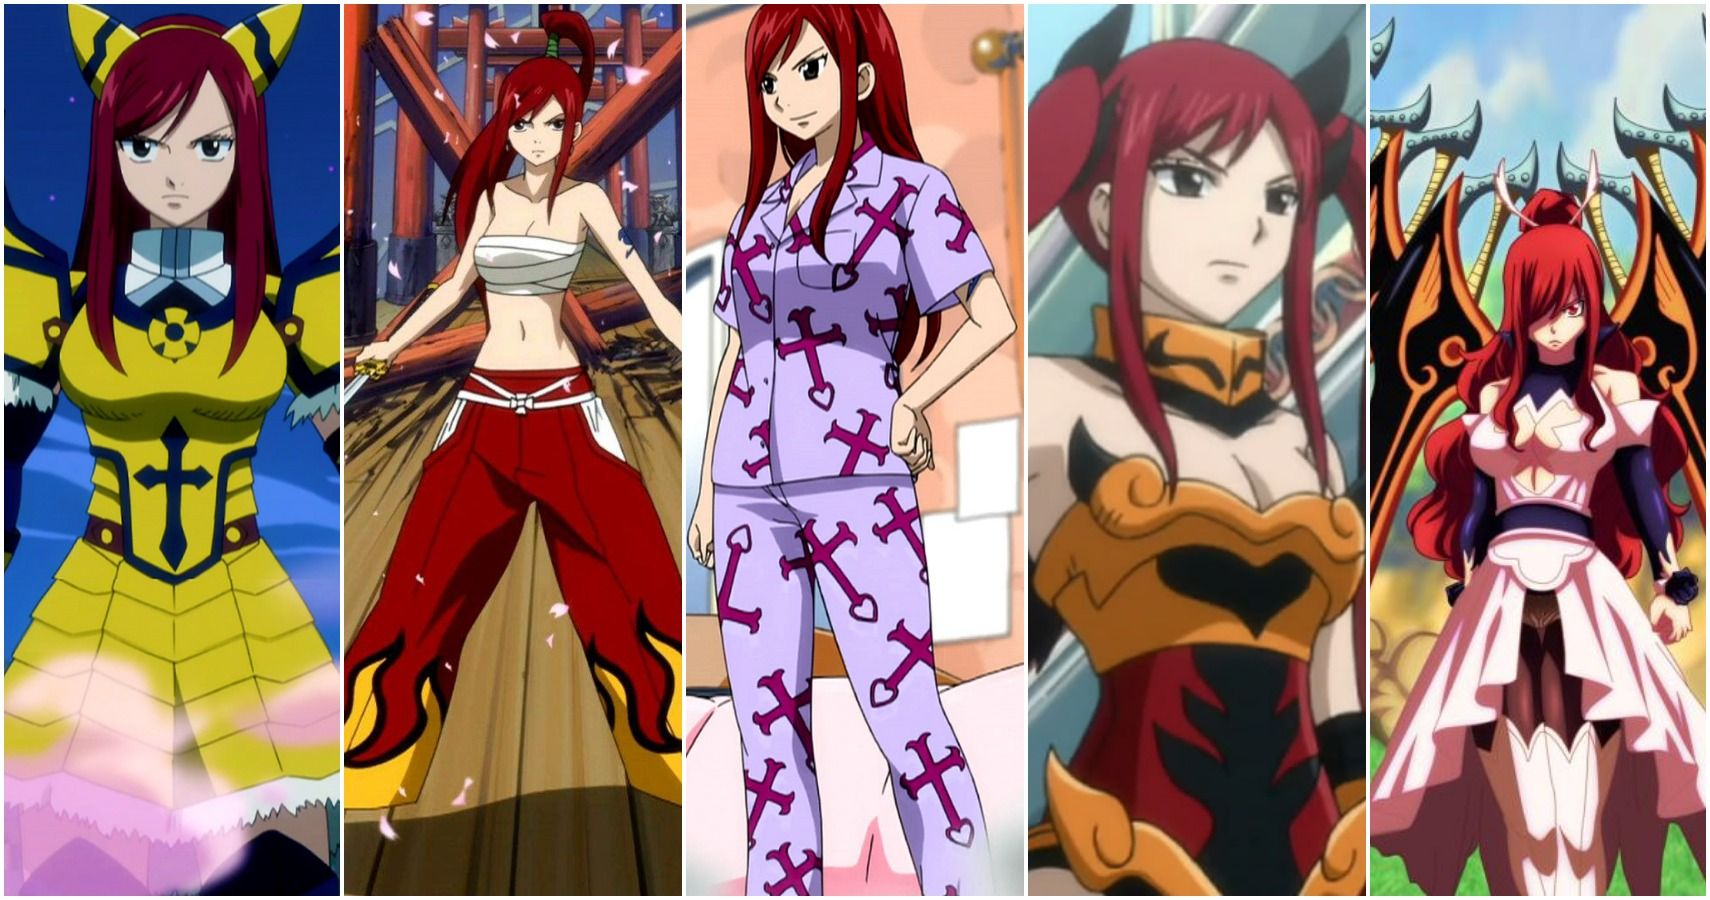 Fairy Tail: 10 Best Relationships In The Series | CBR